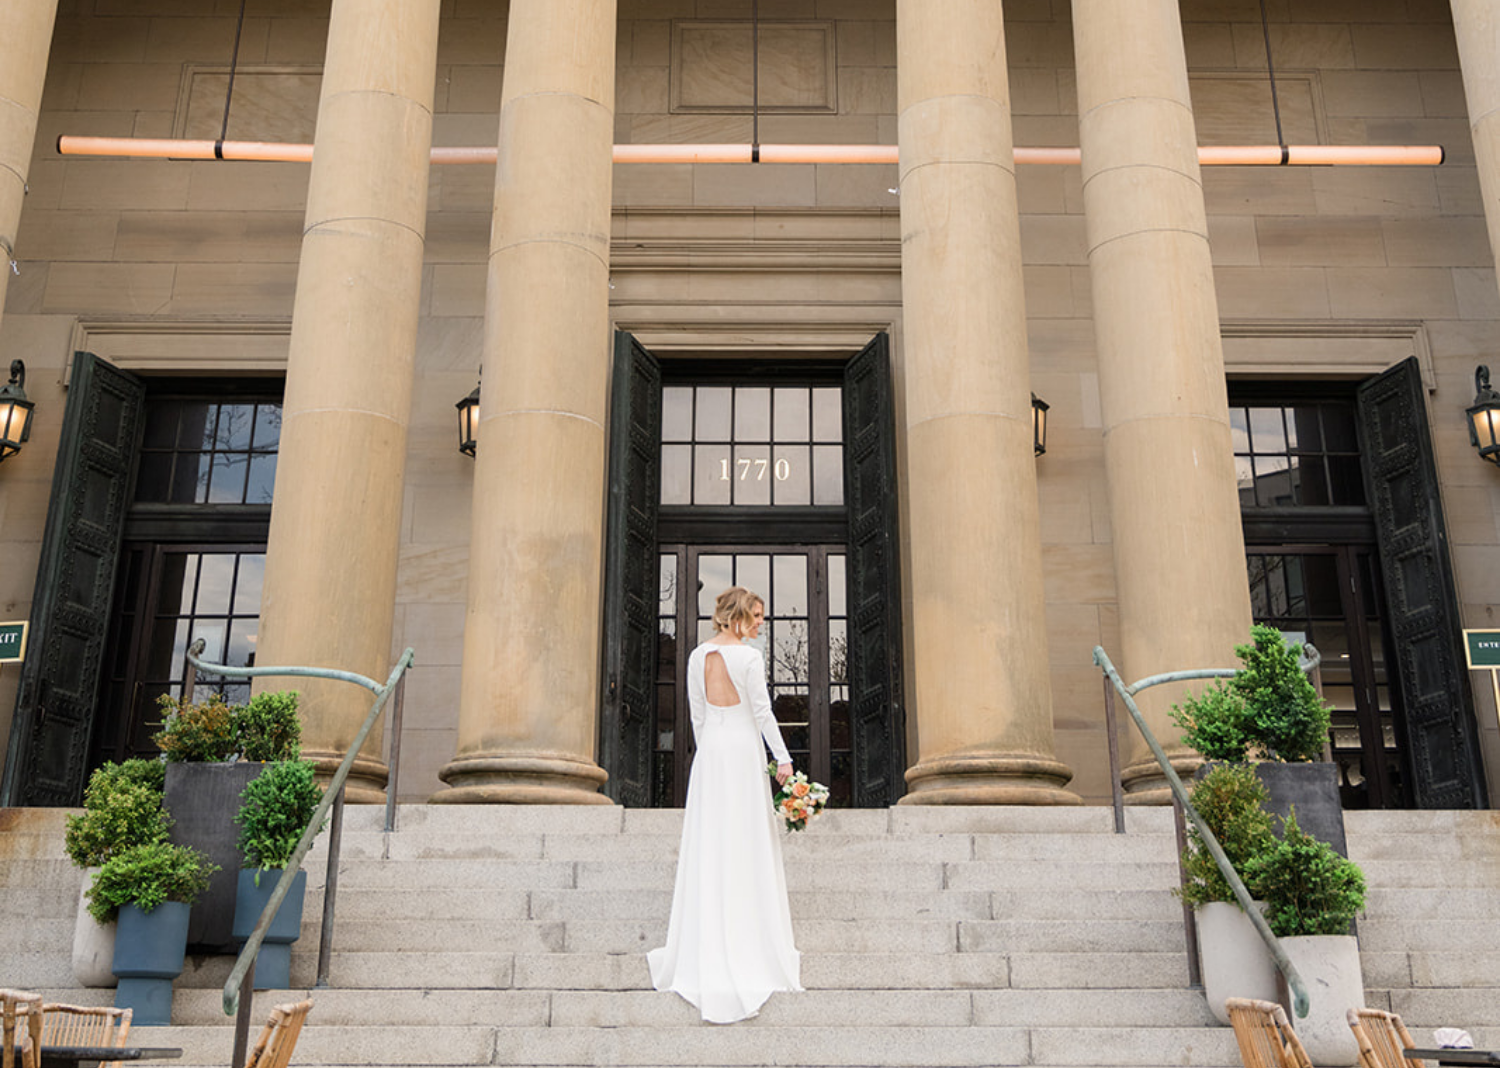 bride showing off her wedding dress as she faces away from the camera